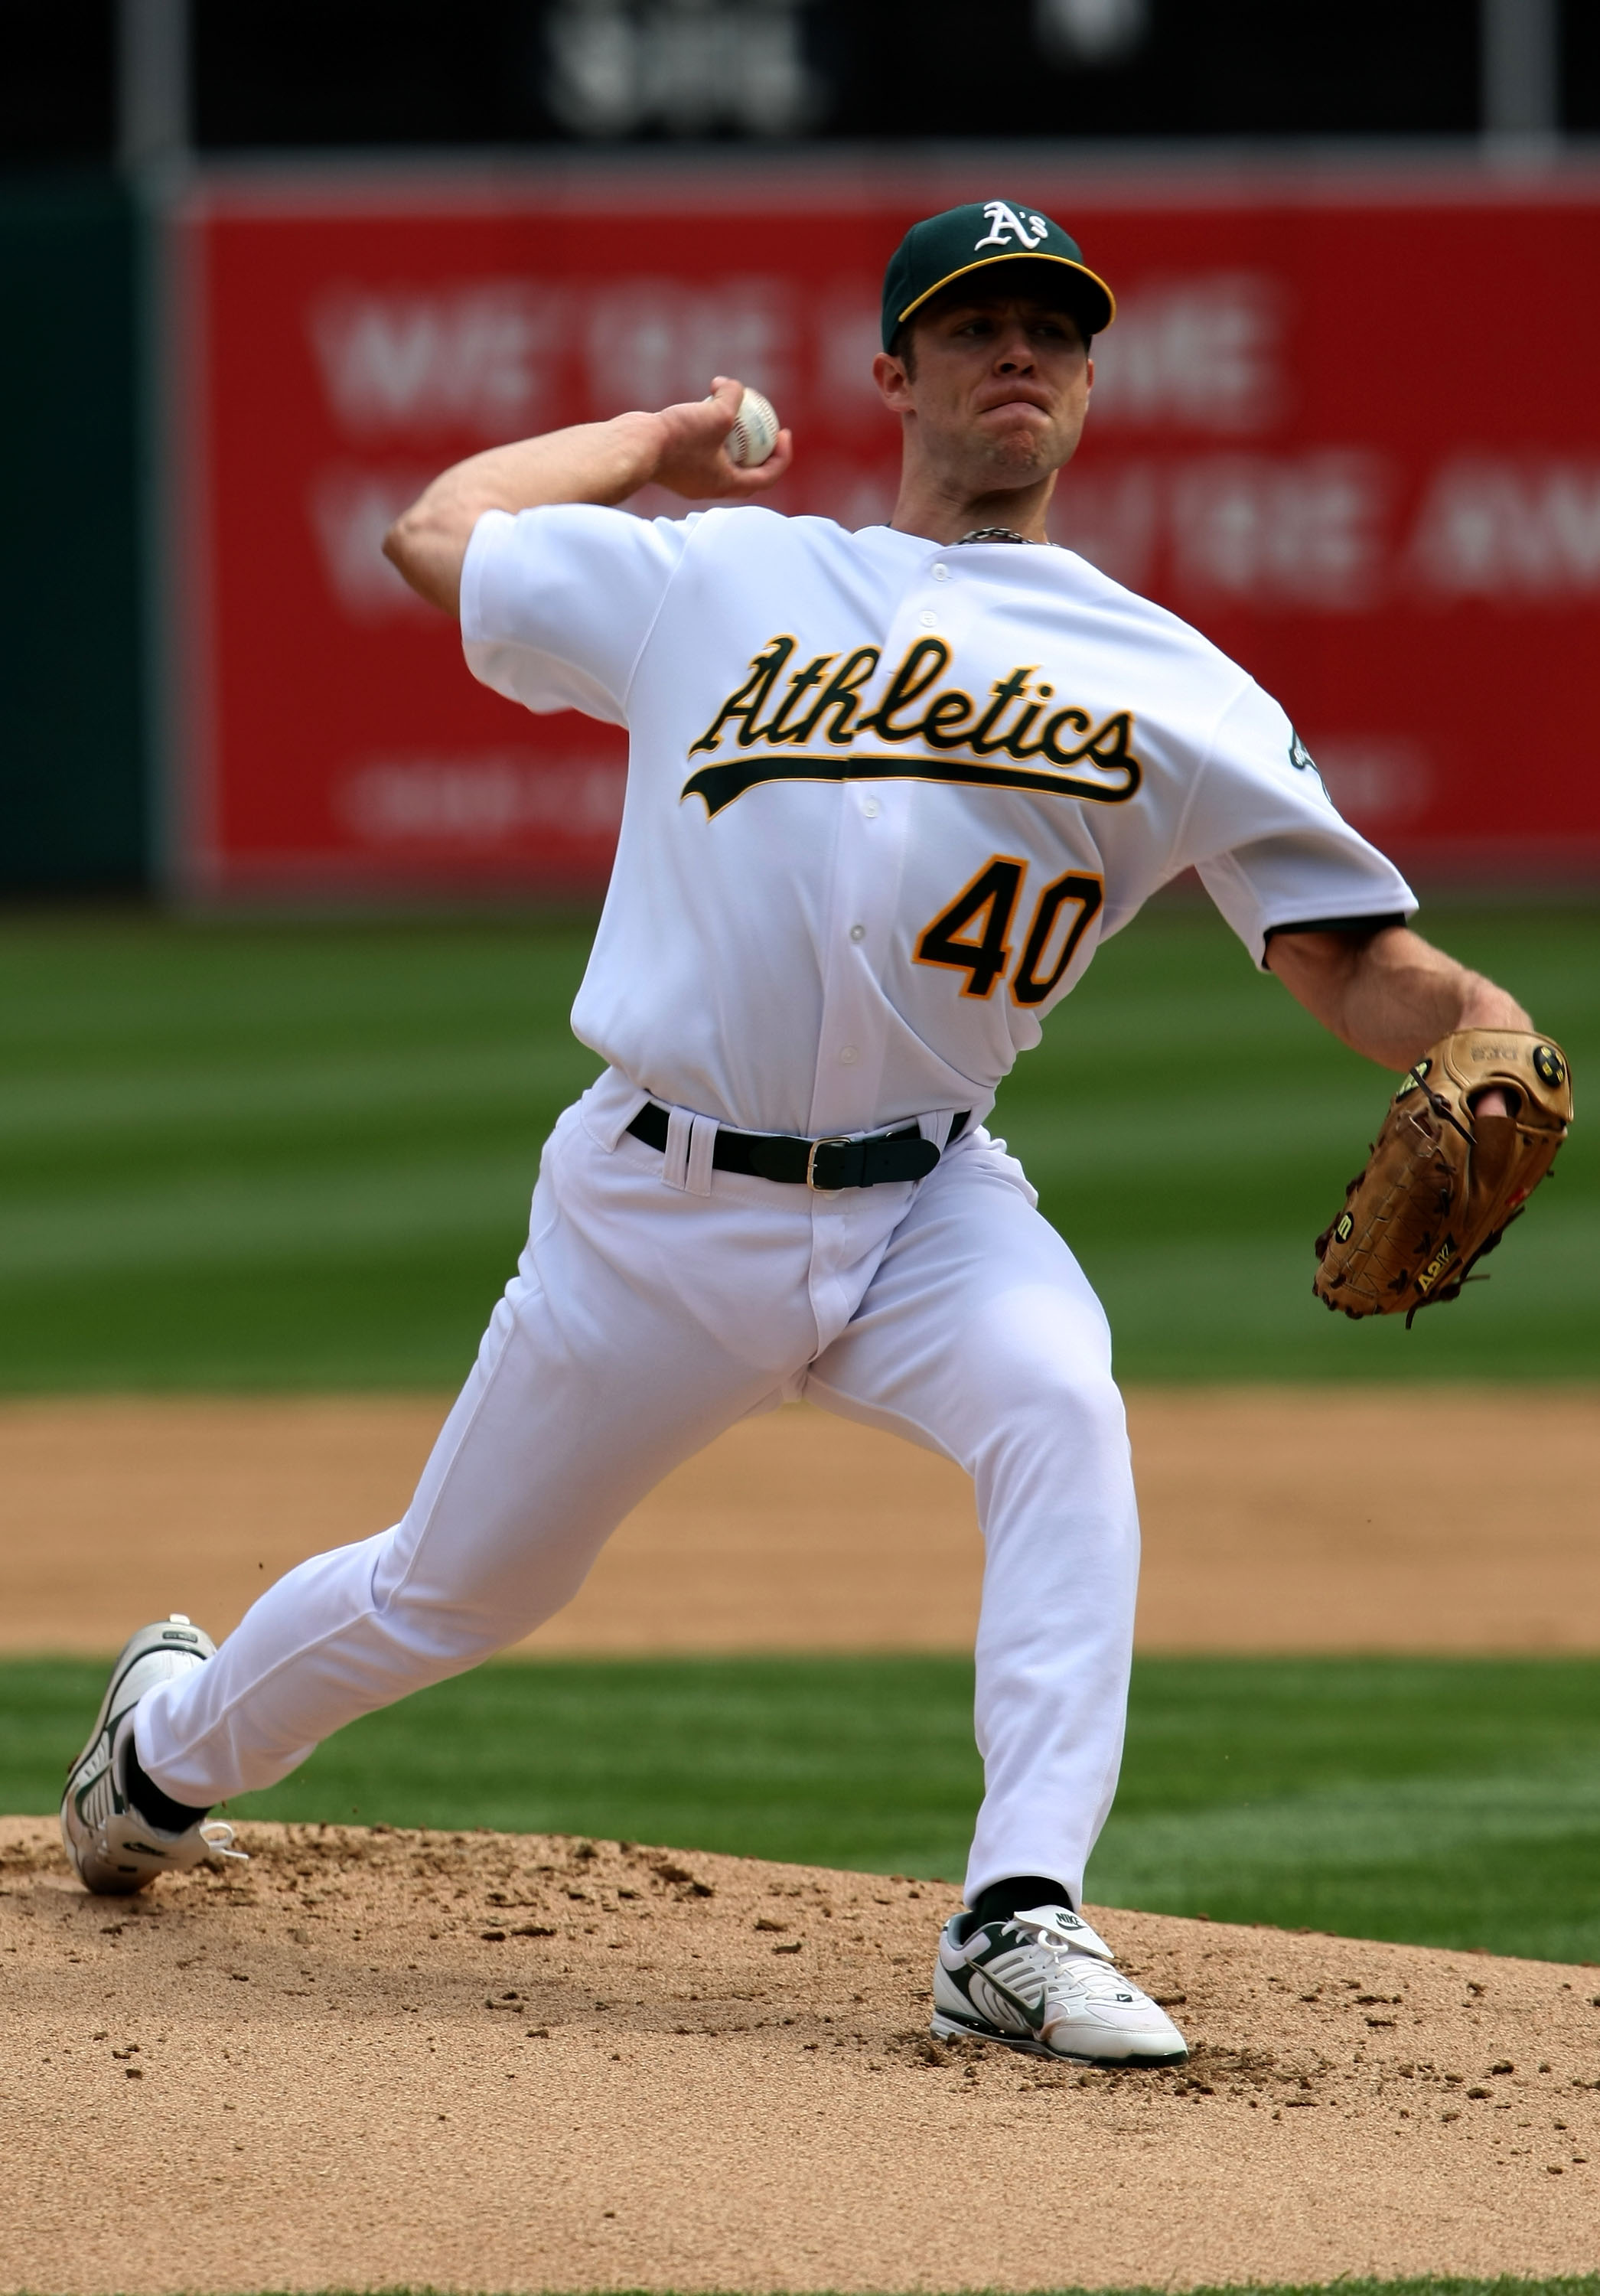 OAKLAND, CA - APRIL 02:  Rich Harden #40 of the Oakland Athletics pitches against the Boston Red Sox during the first inning at the McAfee Coliseum April 2, 2008 in Oakland, California.  (Photo by Justin Sullivan/Getty Images)